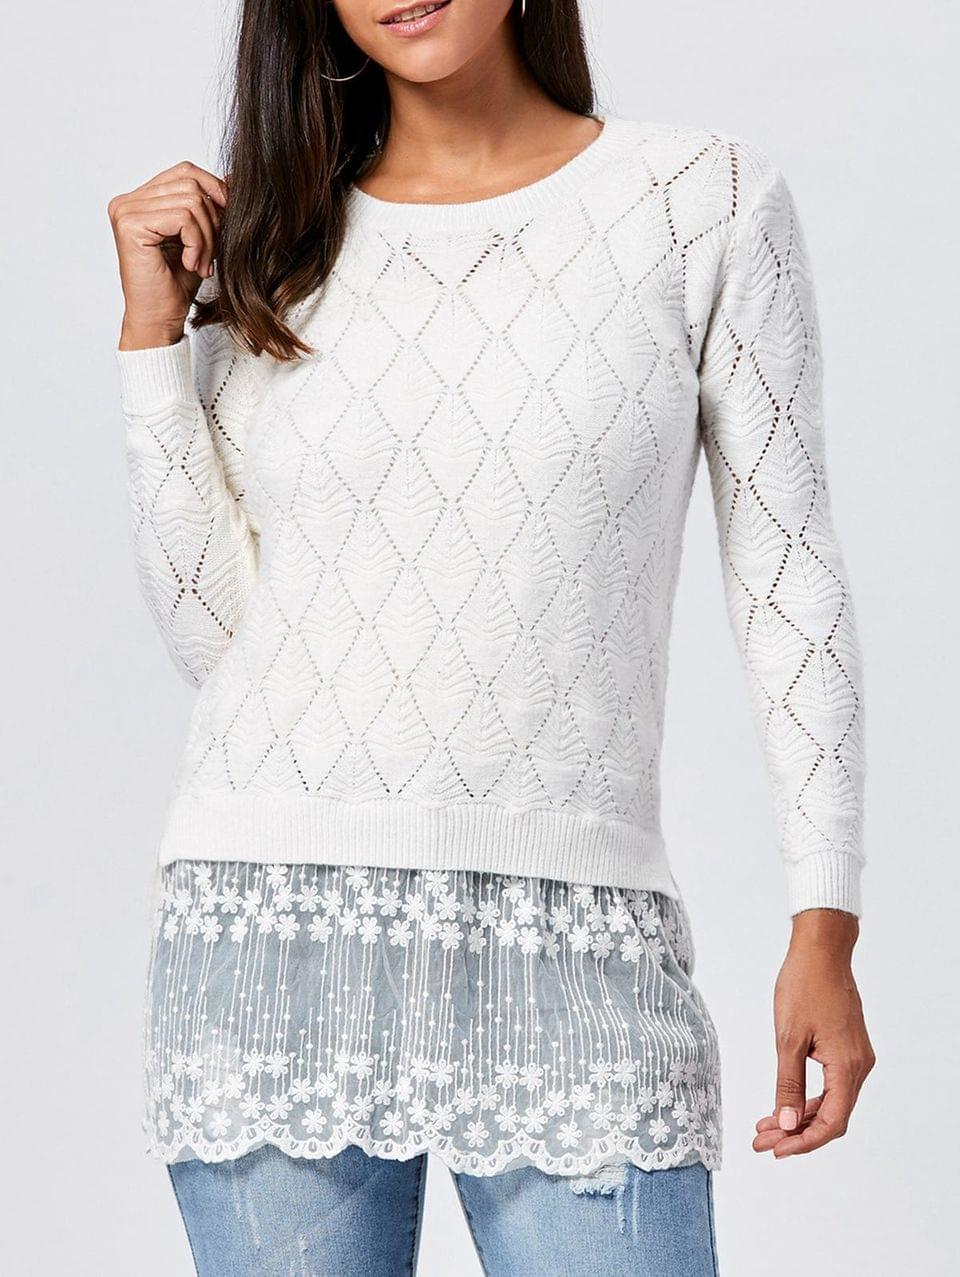 Women's Lace Panel Hollow Out Argyle Ribbed Pullover Sweater - White M